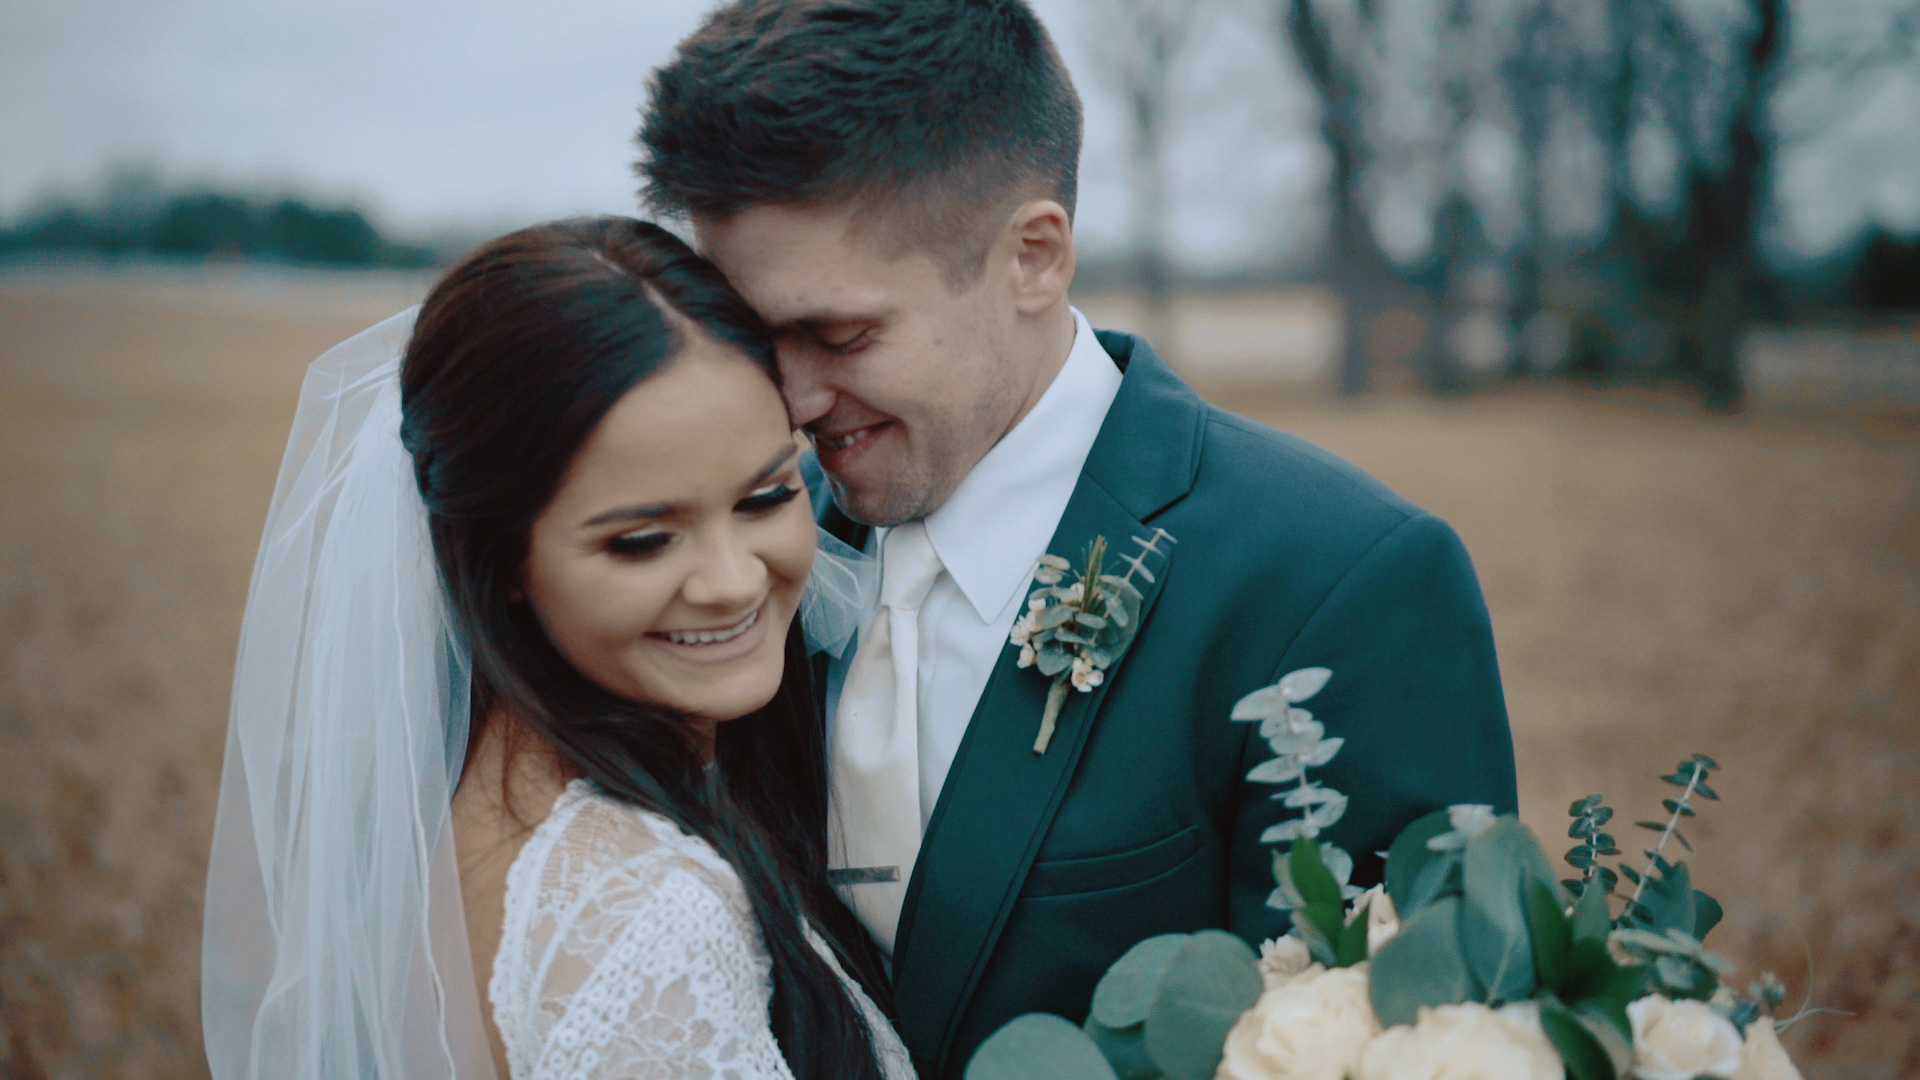 """WOW! We loved Tommy! He was so go with the flow and so sweet!! He exceeded our expectations of what we wanted from our wedding video and especially in a wedding videographer!! You can not go wrong choosing him!! He's simply amazing!!"" - - Kimberlin & Bryse Christopher"